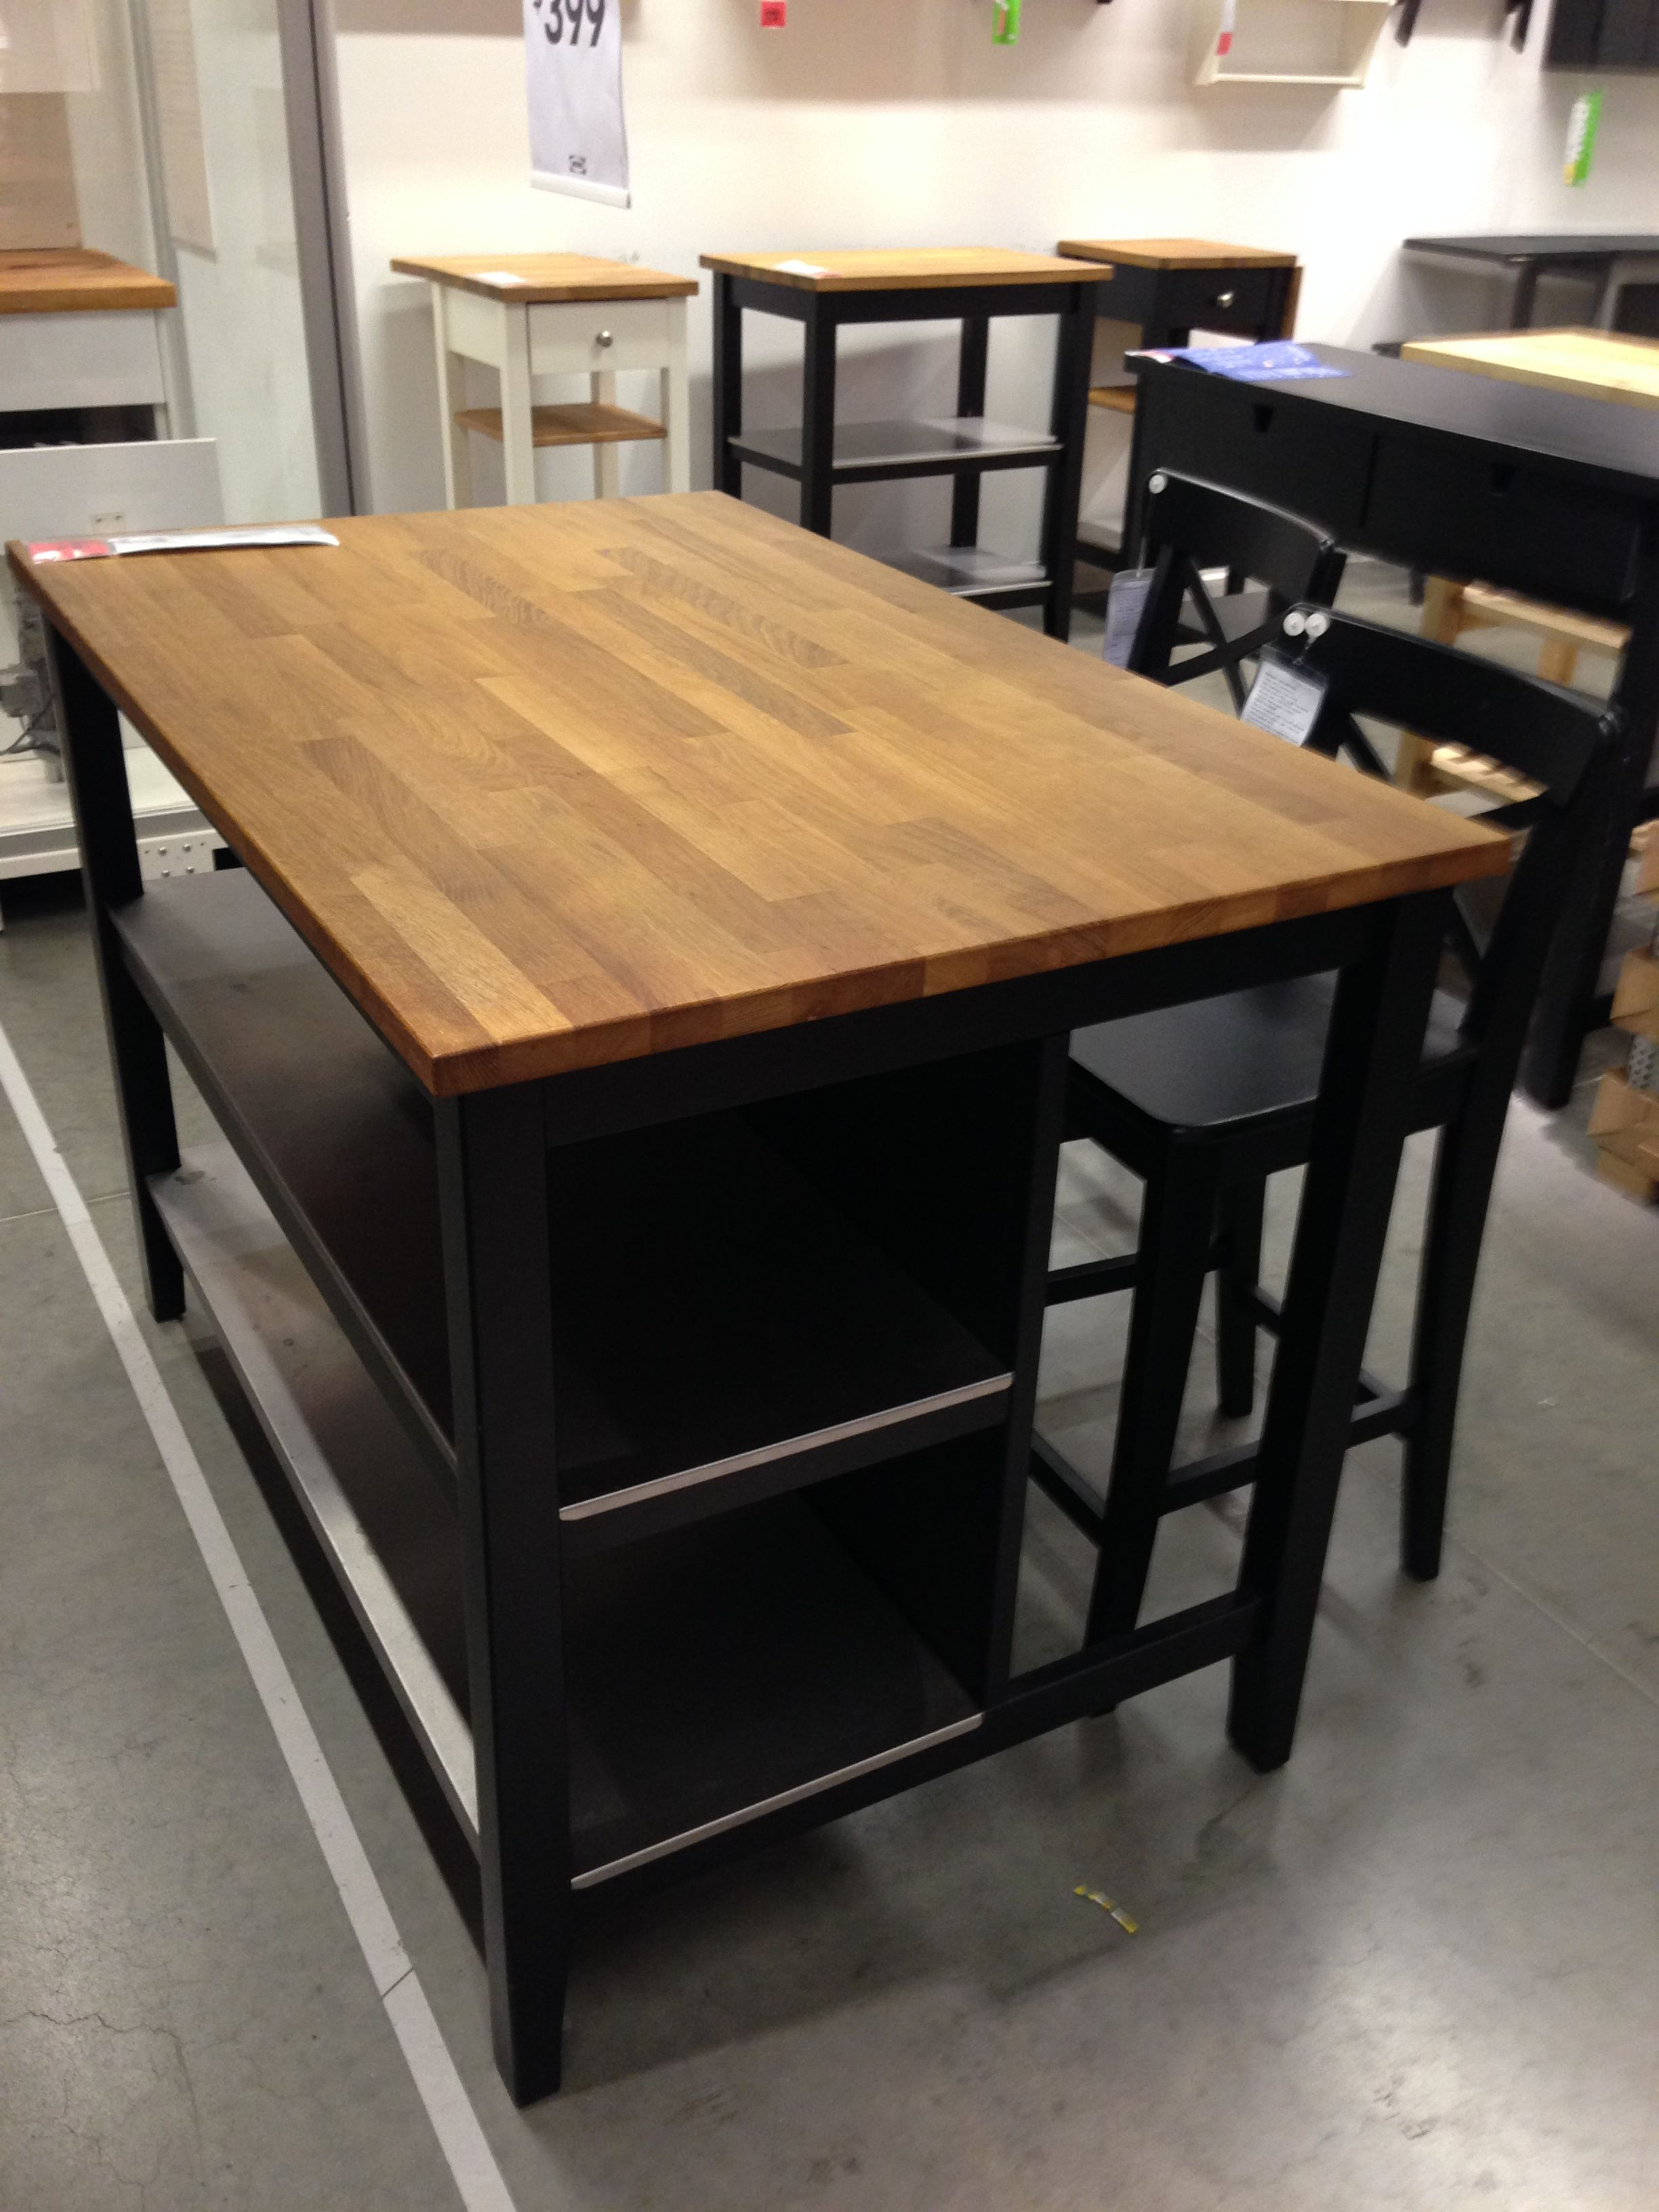 ikea stenstorp kitchen island dark oak front